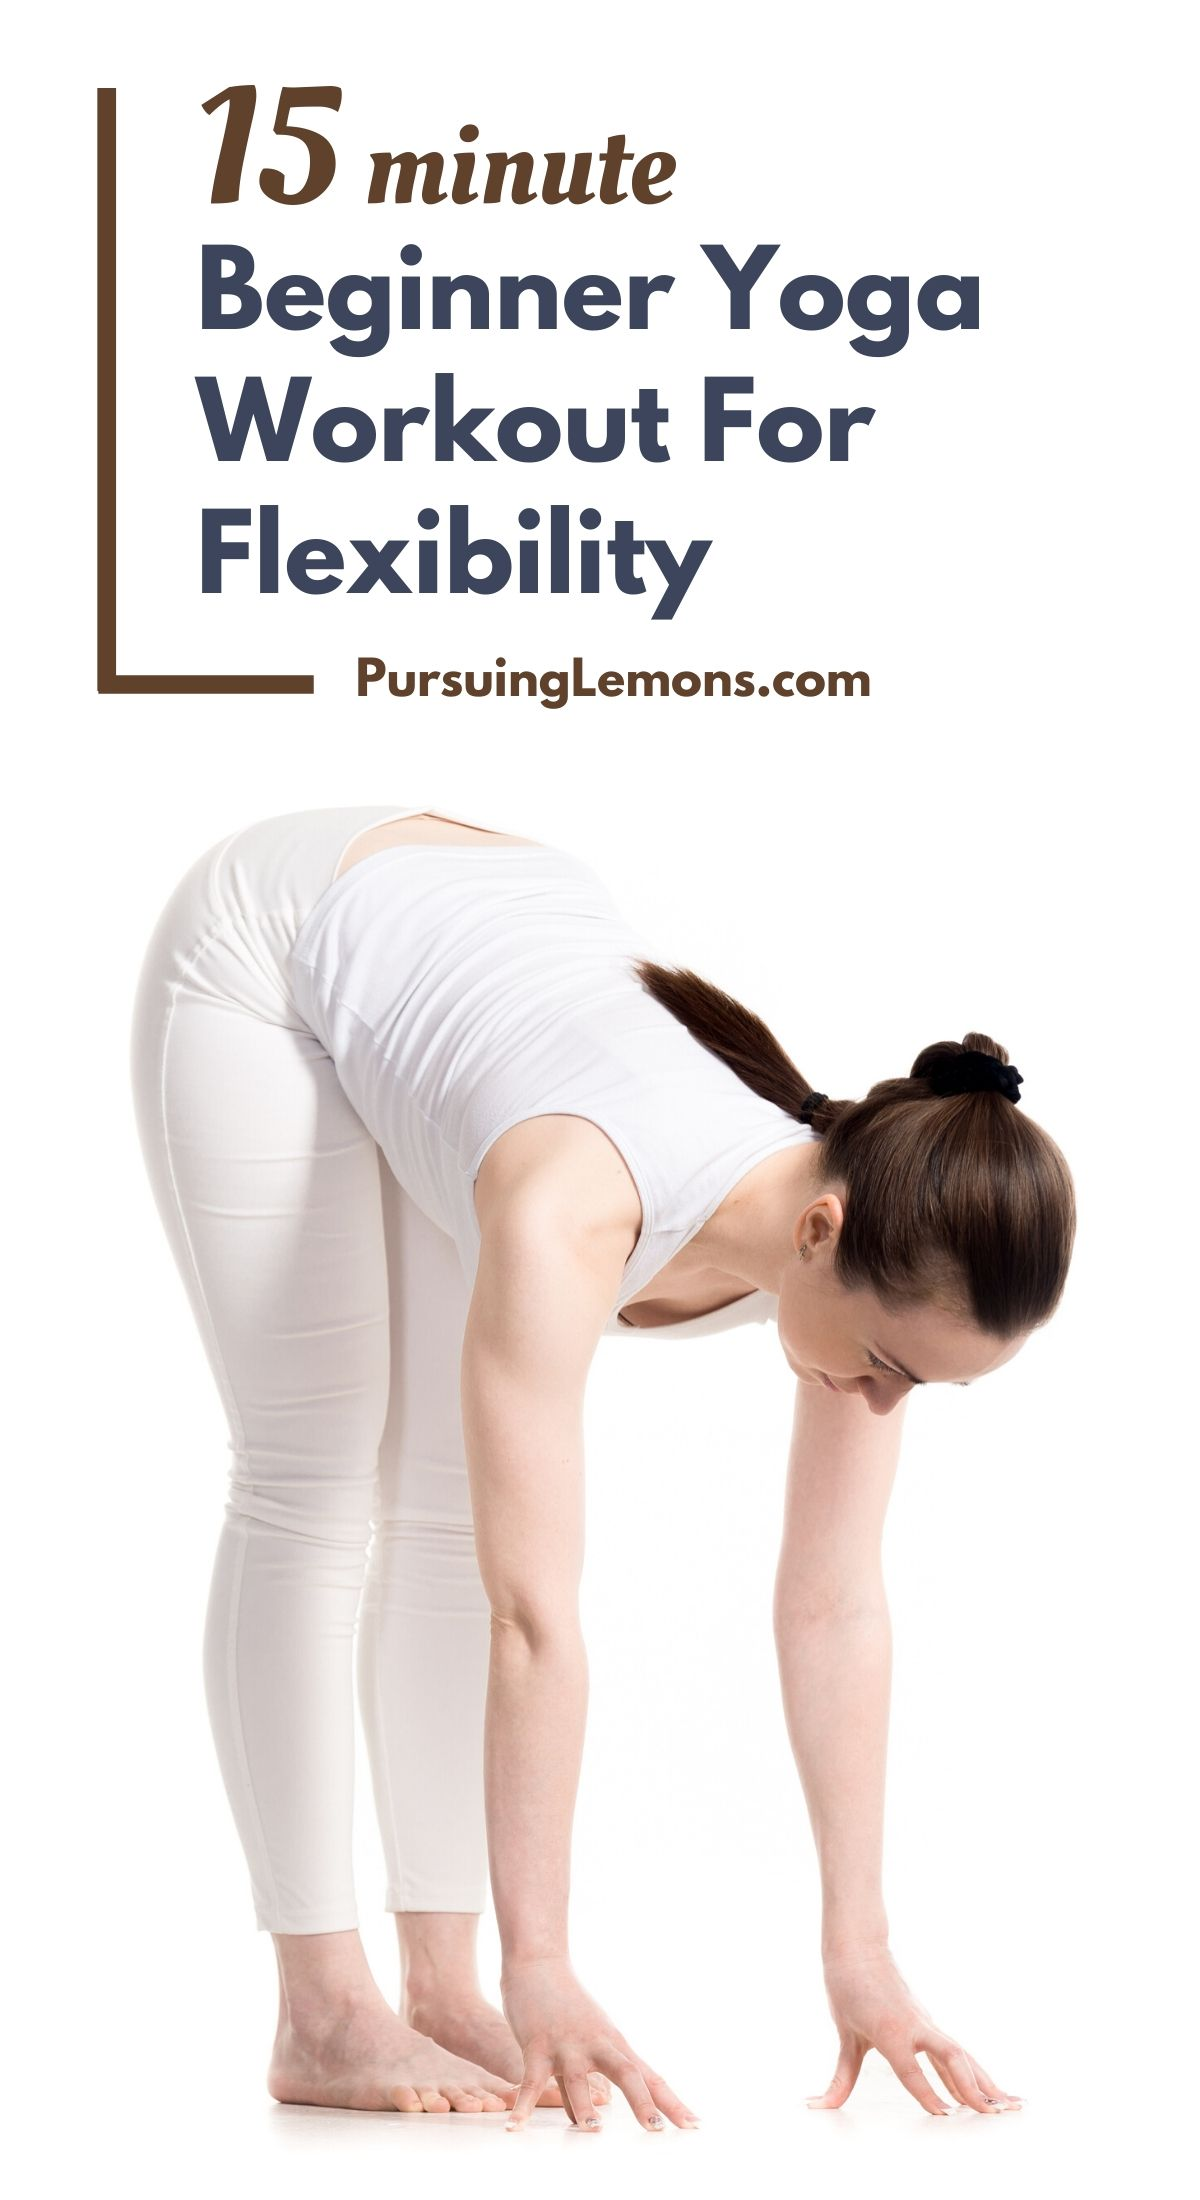 15 Minute Beginner Yoga Workout For Flexibility | These are the best beginner yoga poses to help you improve flexibility, relieve strain, back pain, and improve range of motion! #yoga #yogaforflexibility #yogaworkout